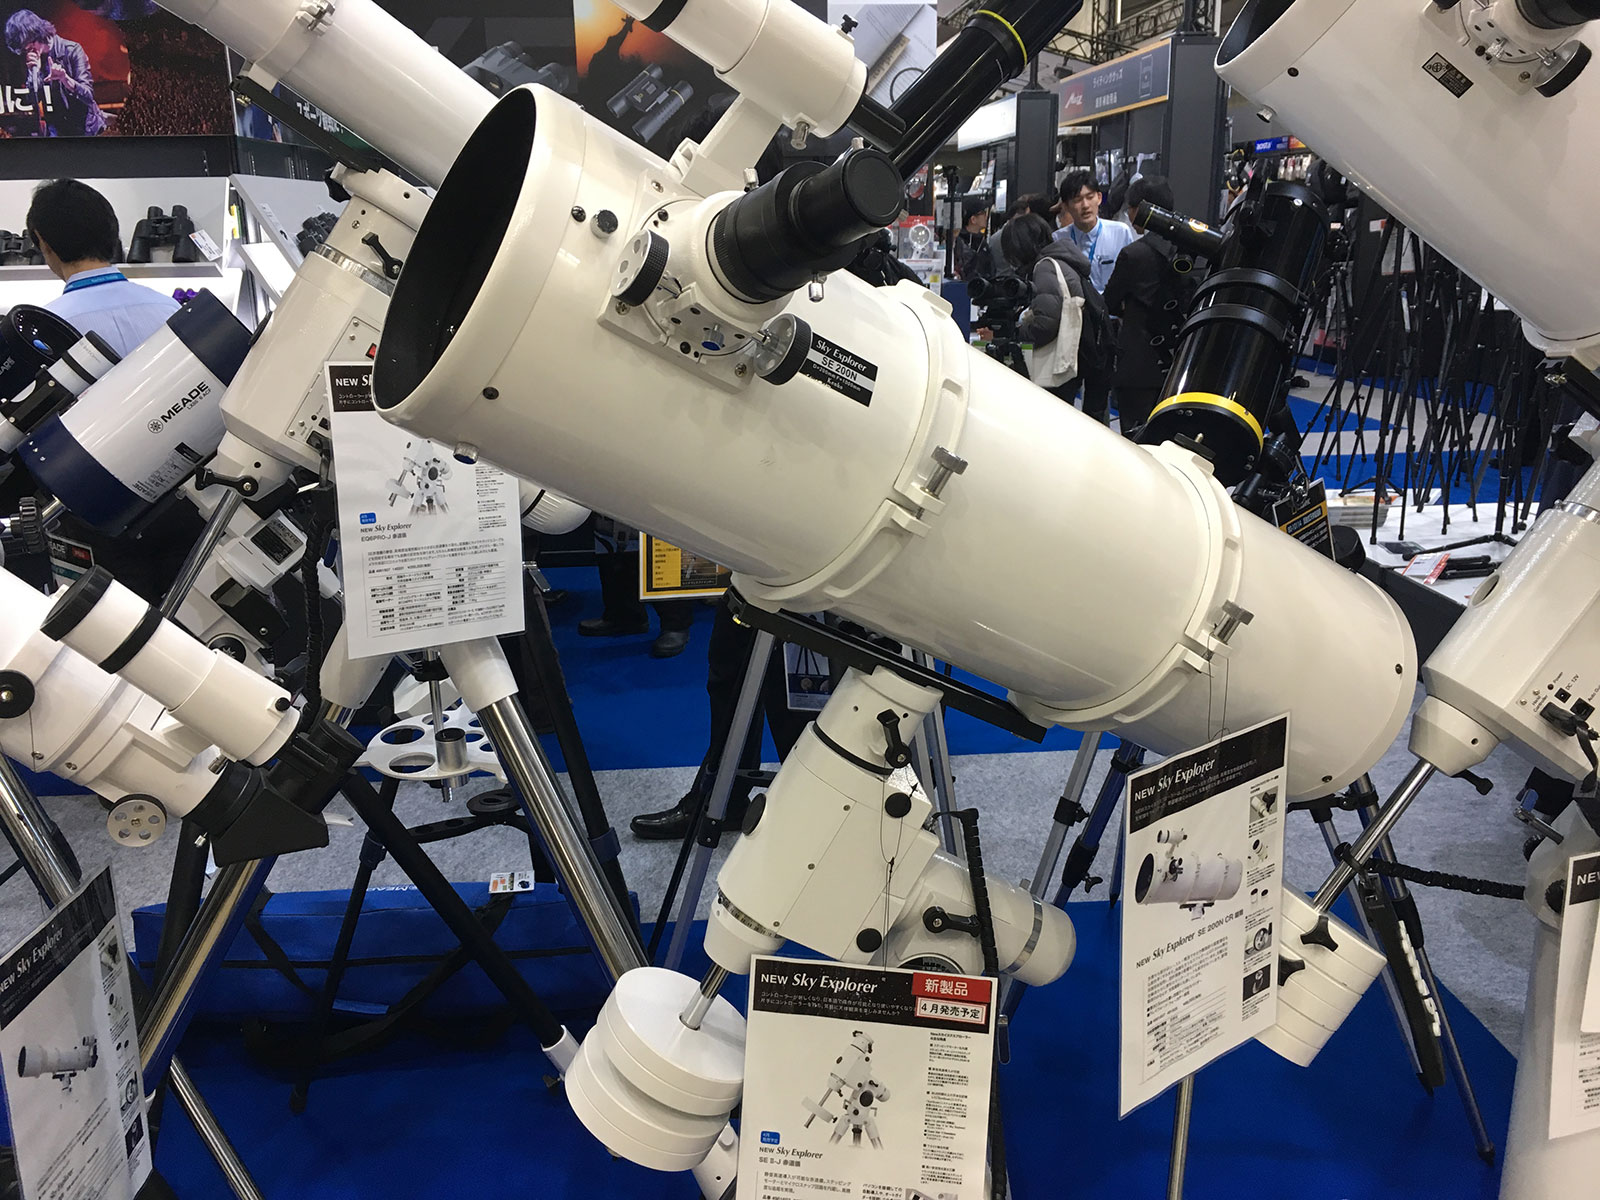 Kenko New Sky Explorer series is our ultimate recommended choice for those who are already into astronomy and need a high quality, reliable telescope.